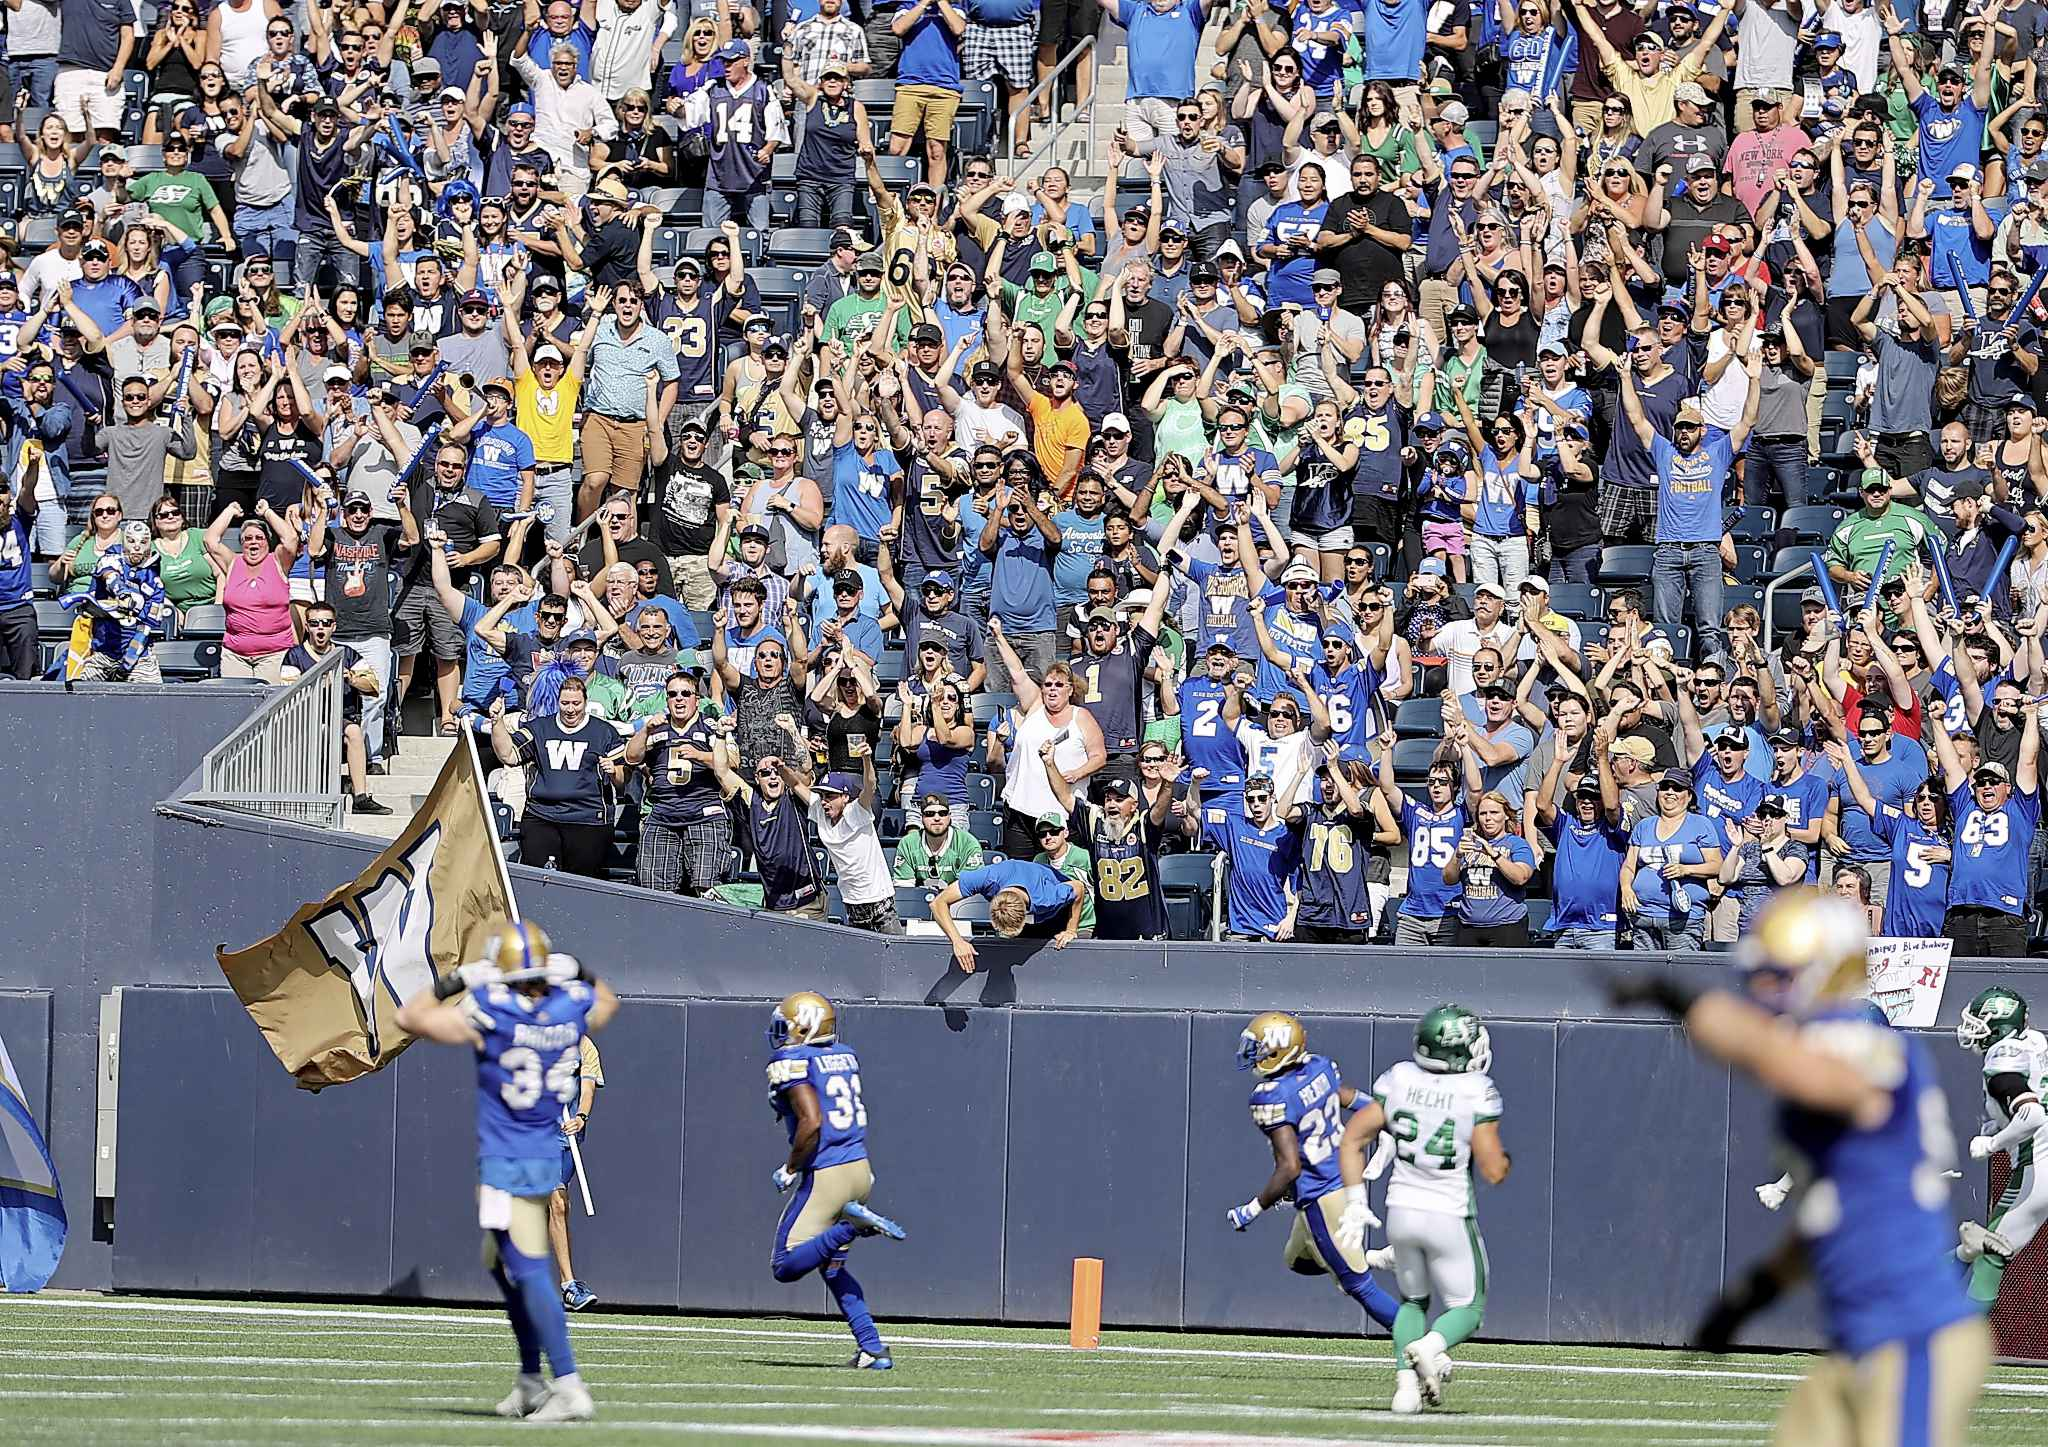 TREVOR HAGAN / THE CANADIAN PRESS FILES</p><p>Despite the increase in television viewership last year, it doesn't appear to be translating to more butts in seats across the league. The Bombers are hoping to buck that trend, by trying to give fans more bang — and booze — for their buck.</p>